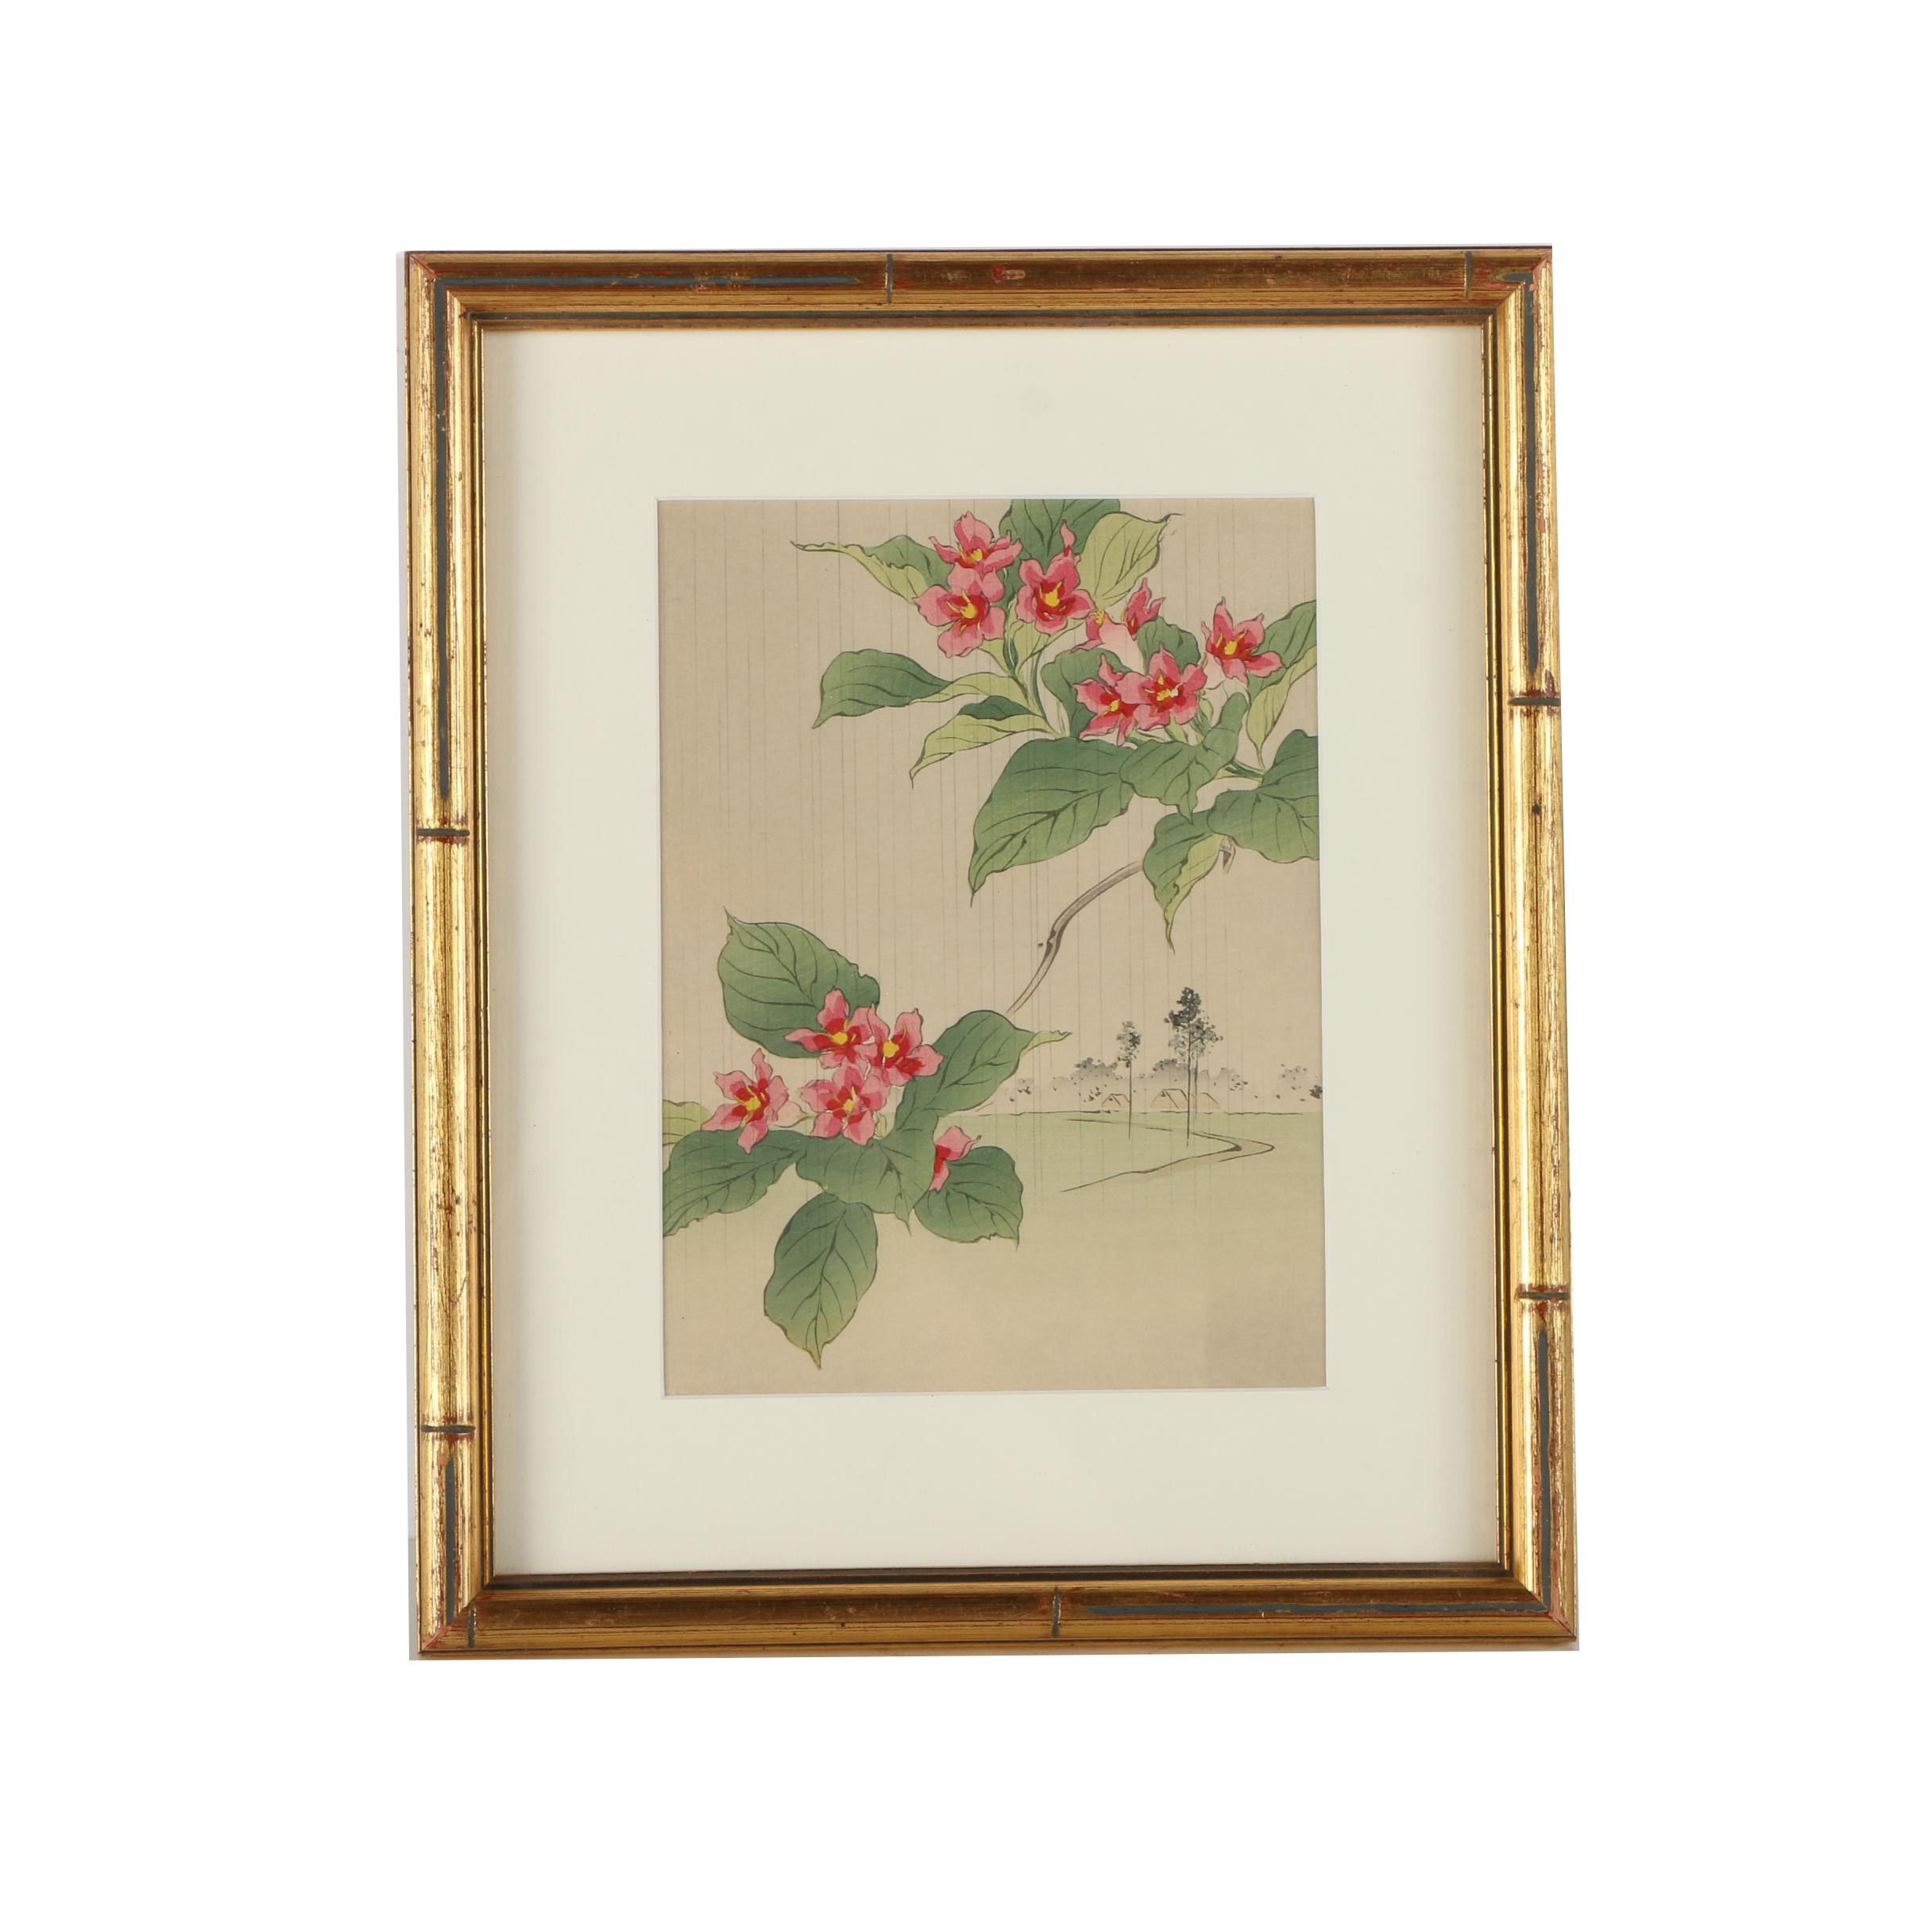 East Asian Style Hand-Colored Woodblock Print on Paper of Weigela